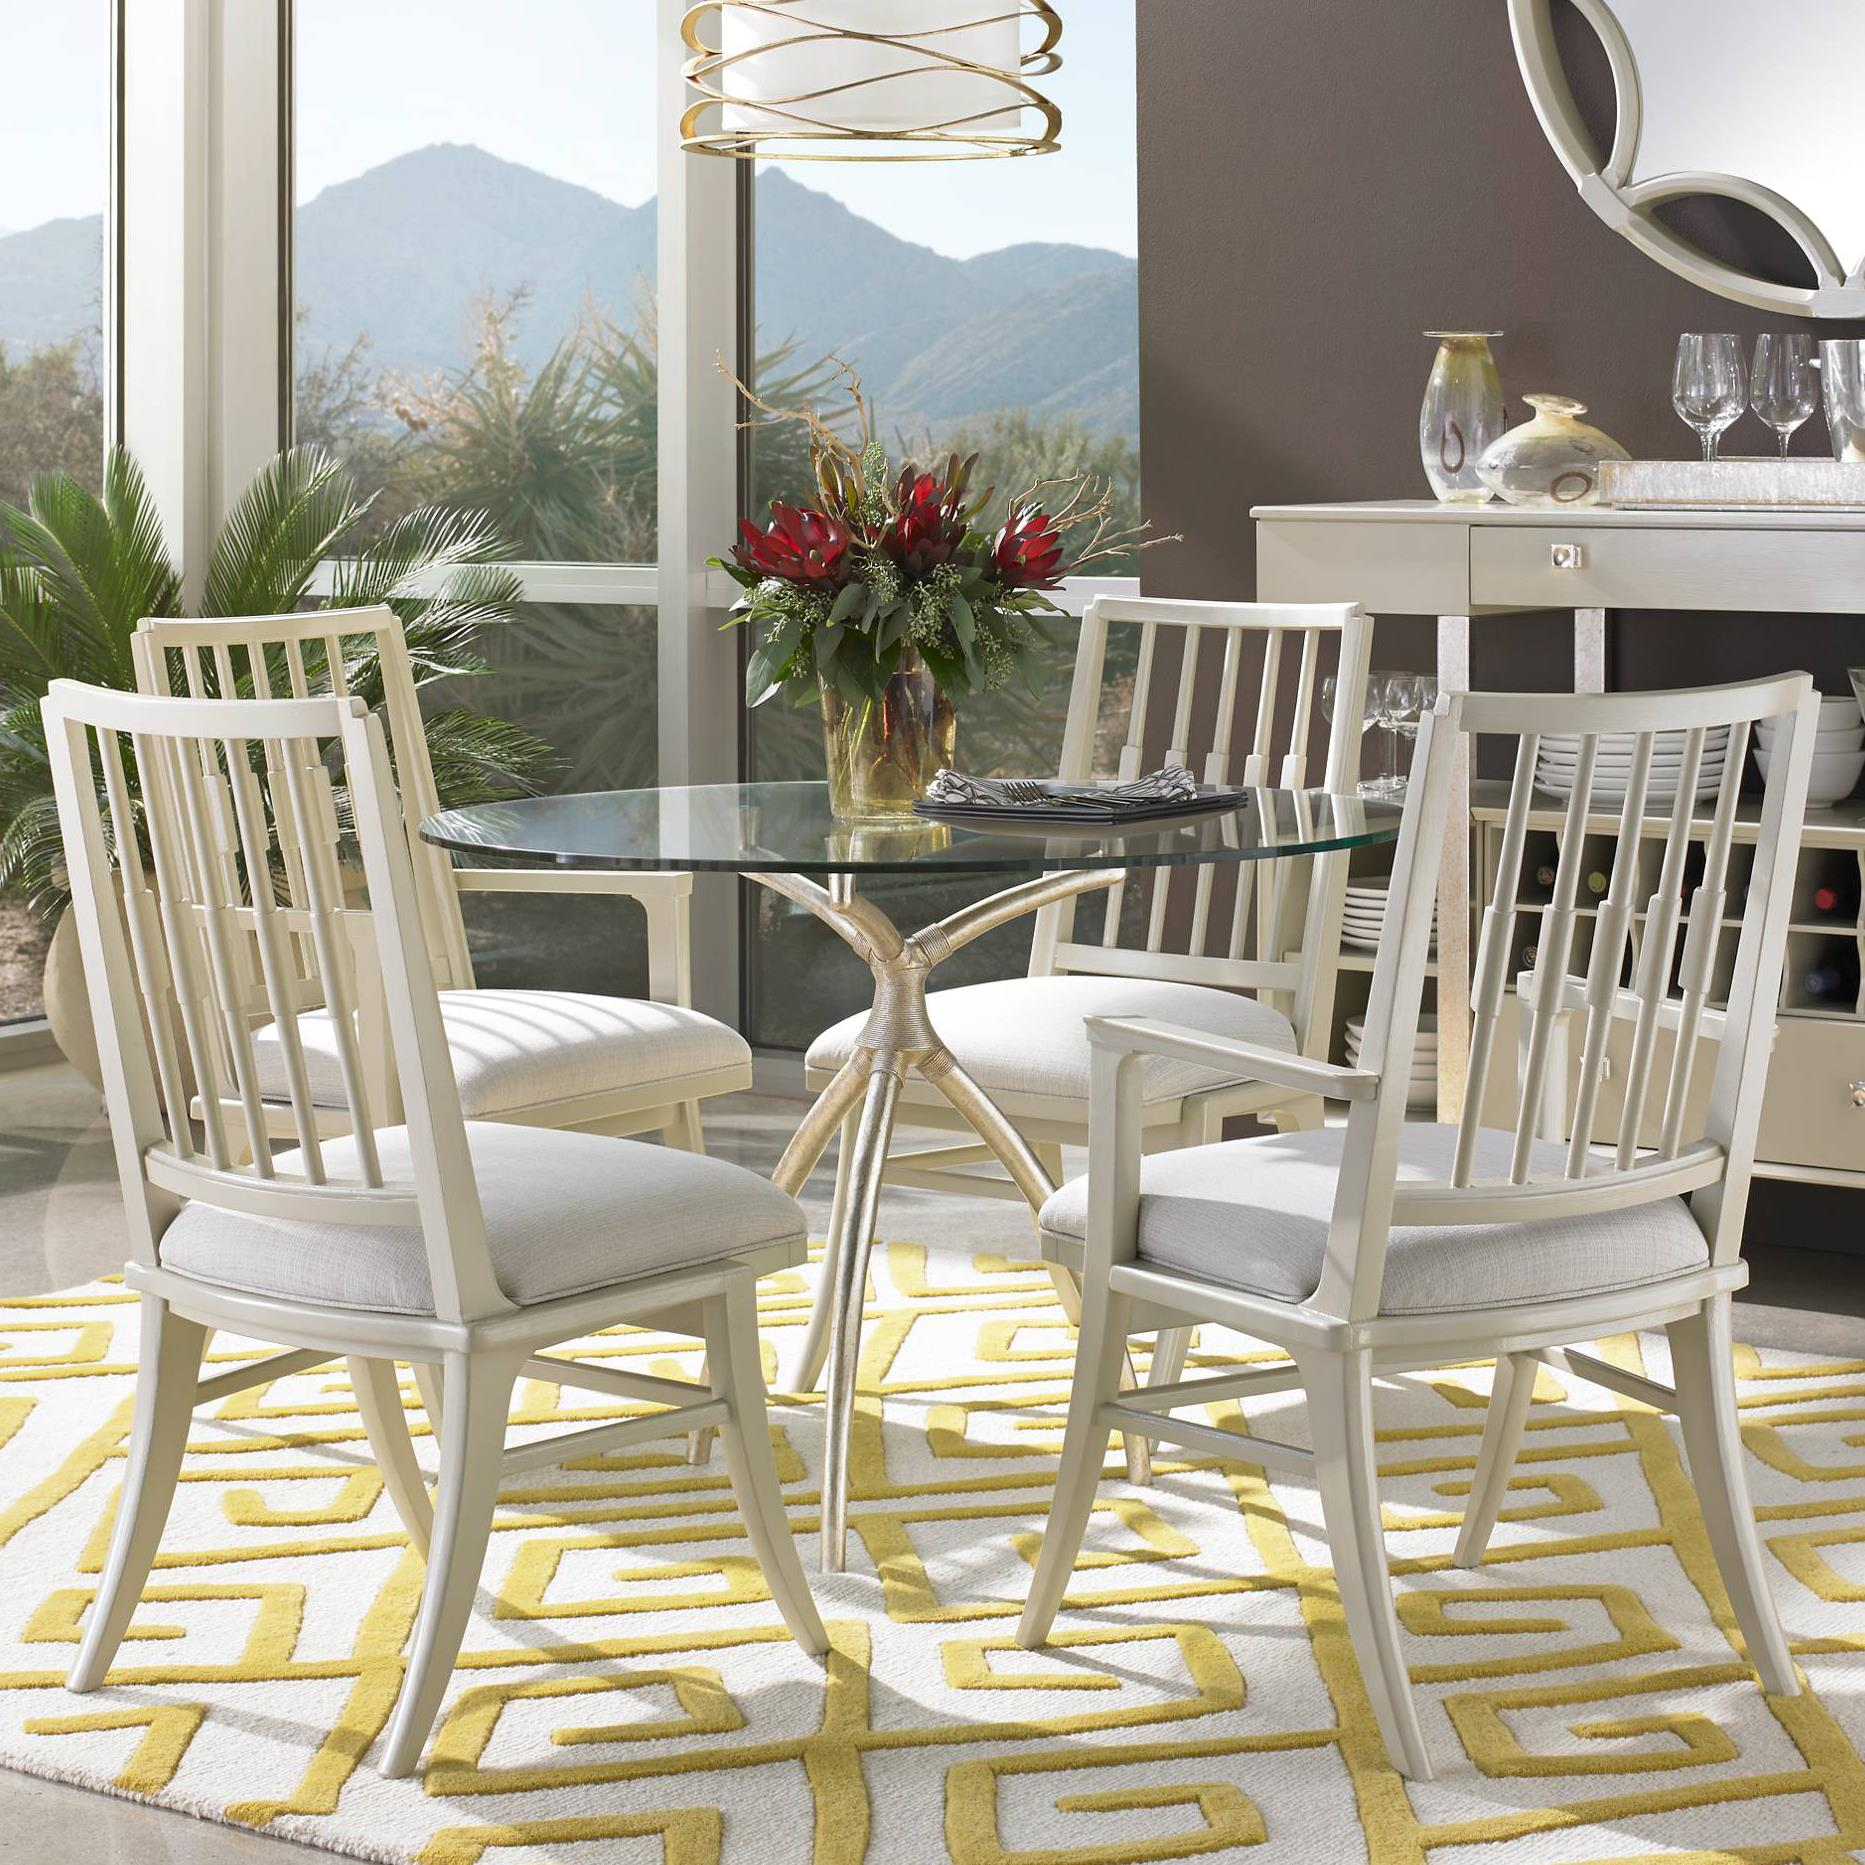 Stanley Furniture Crestaire 5-Piece Hovely Dining Table Set - Item Number: 436-41-30+2x21-70+2x21-60